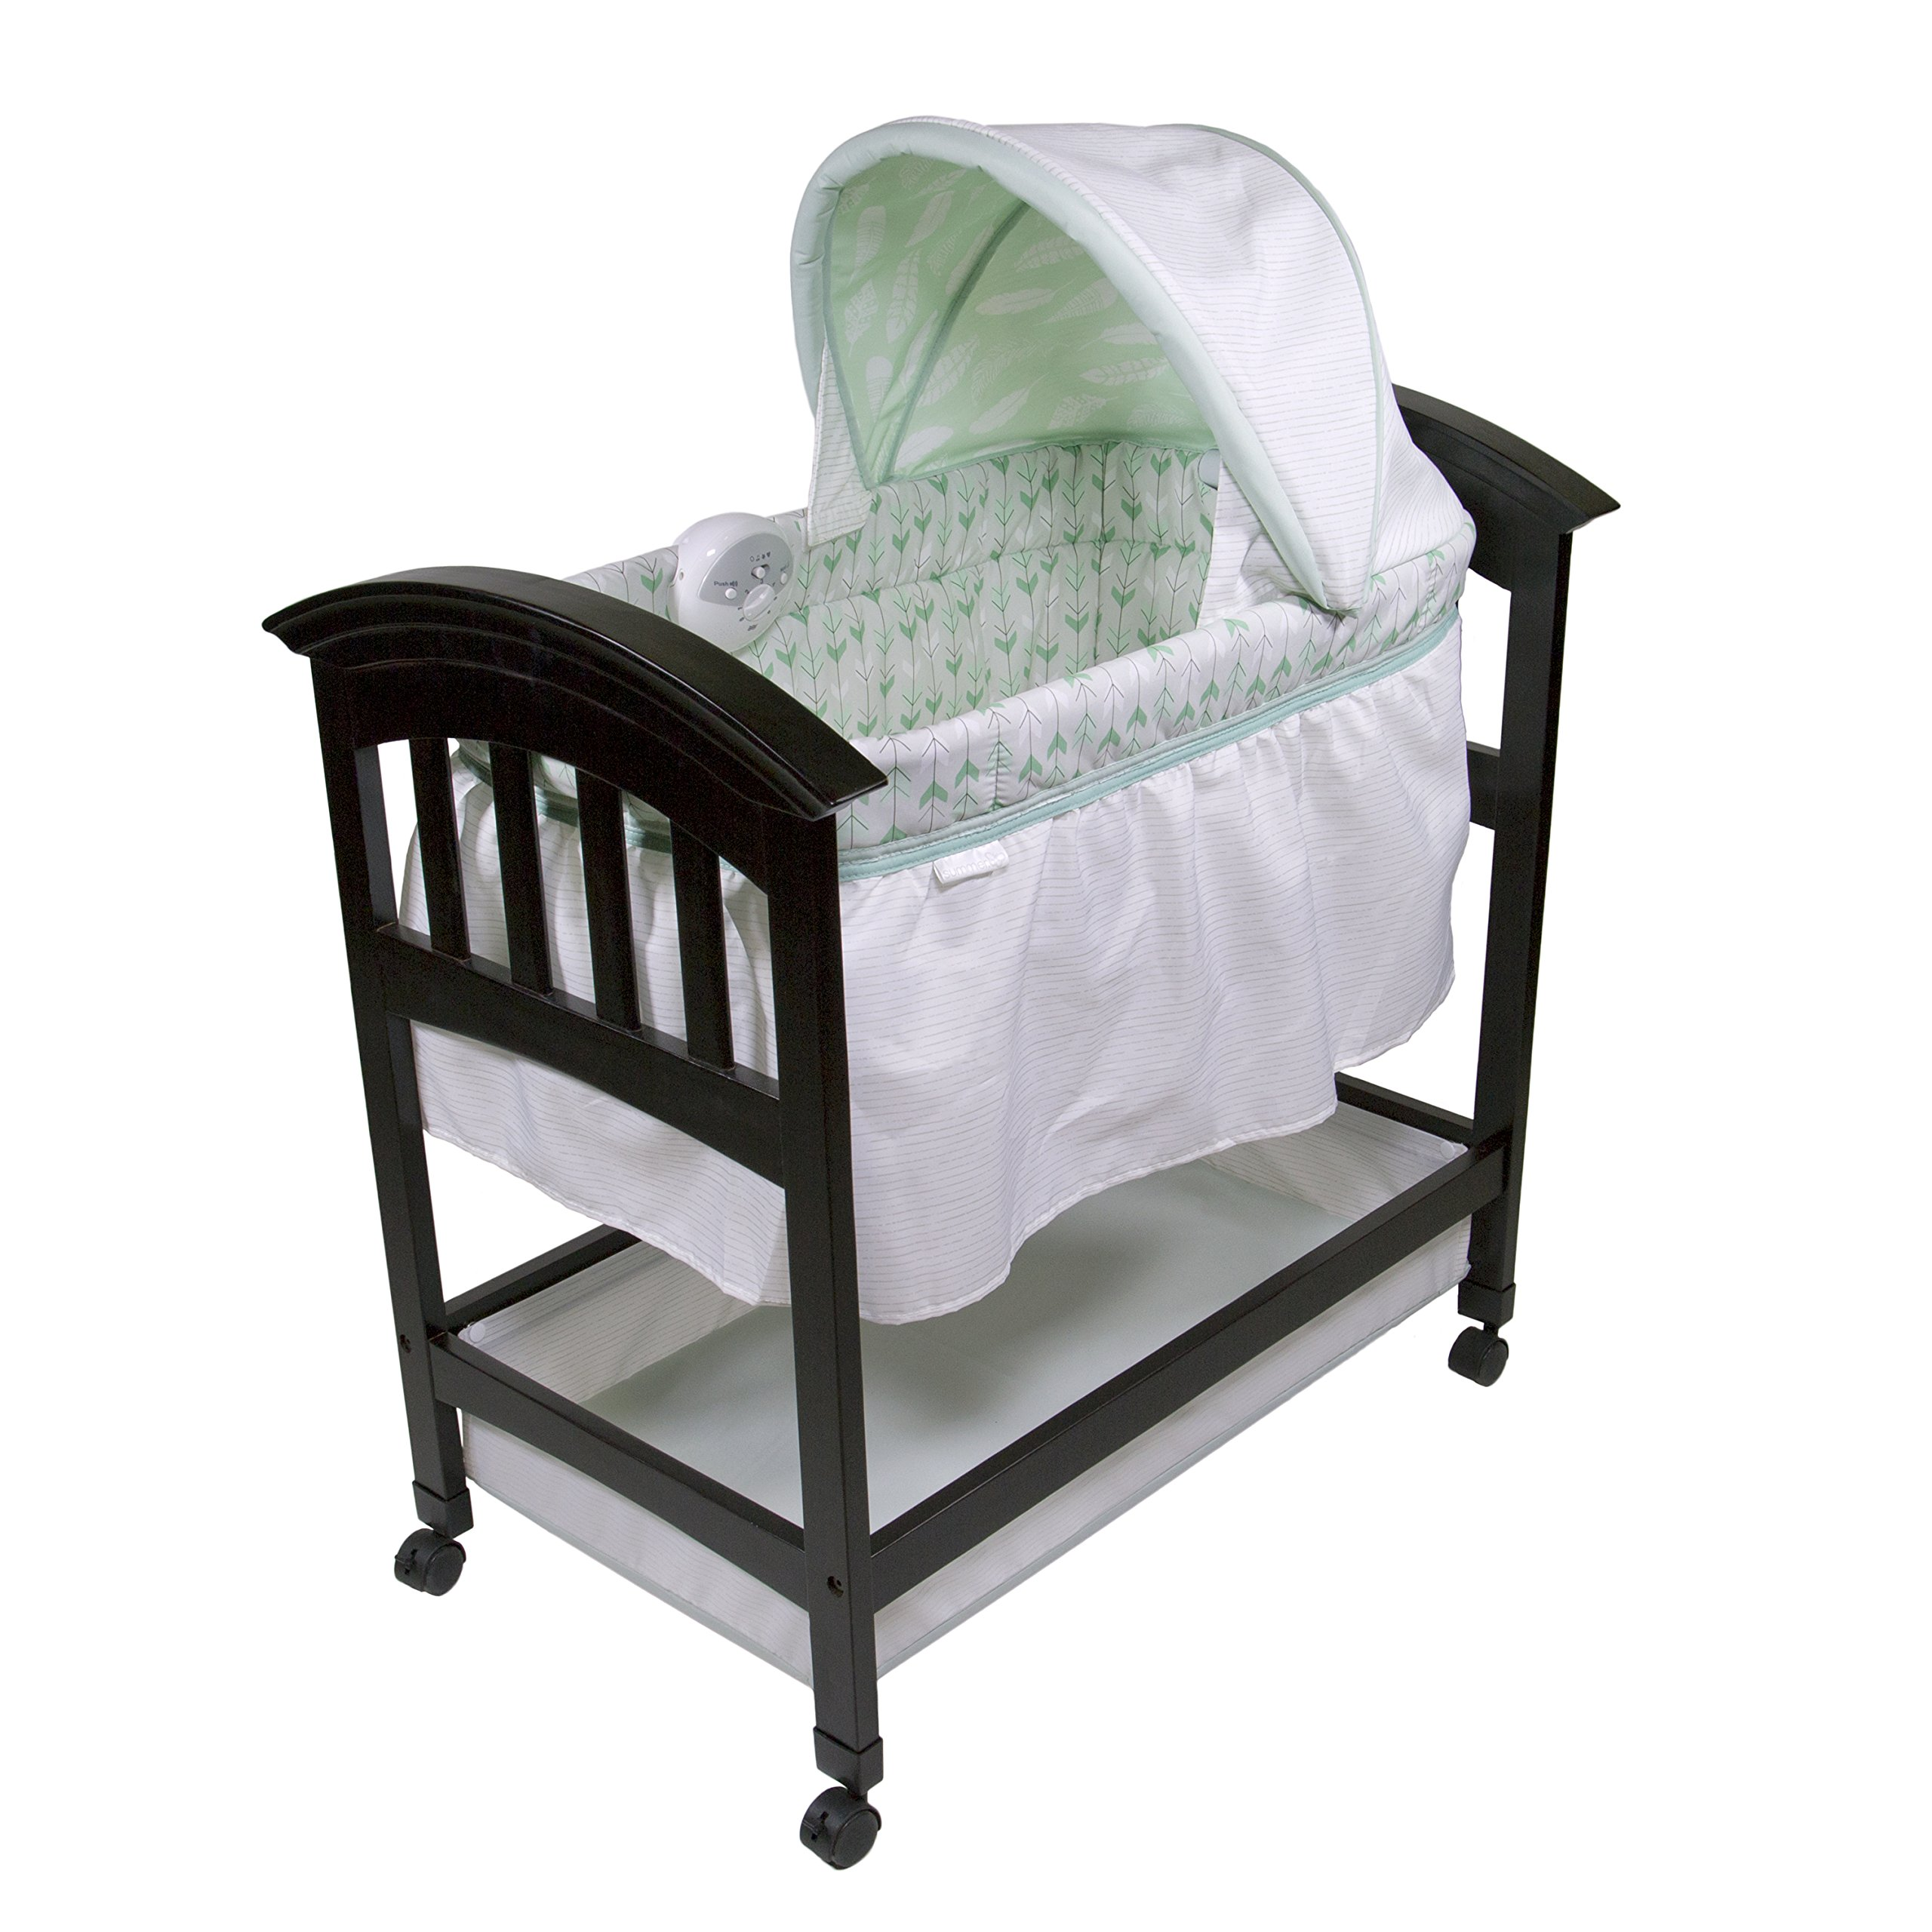 Summer Infant Classic Comfort Wood On Point Bassinet by Summer Infant (Image #1)